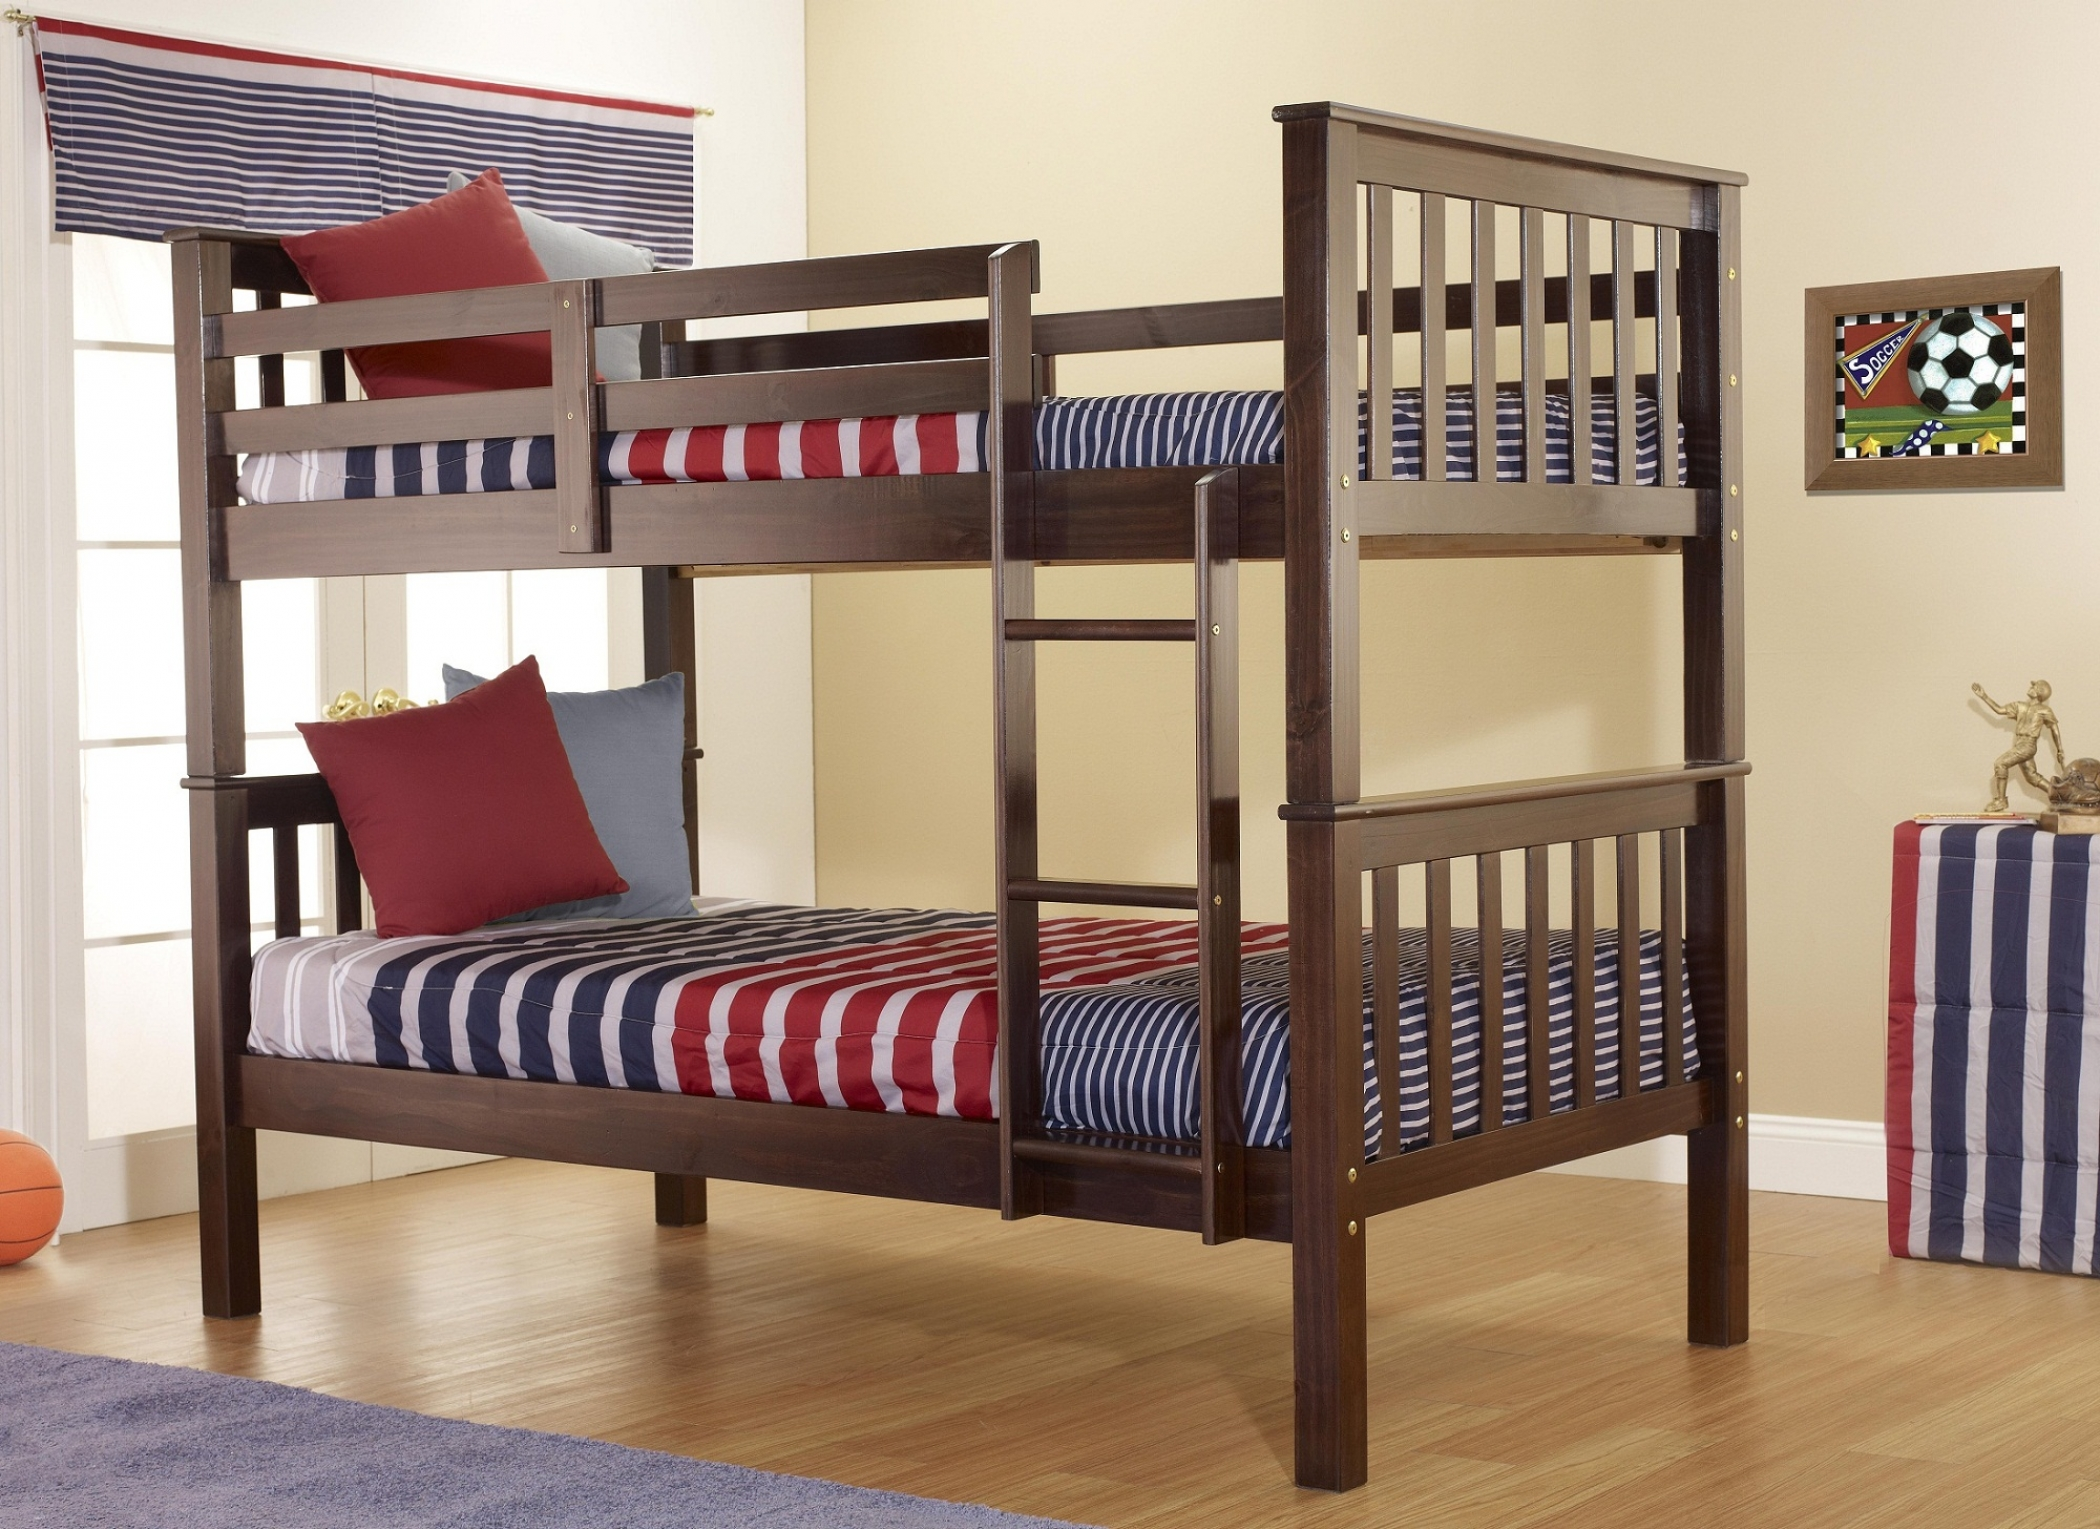 Bunk Beds. Bunk Beds   KEKO FURNITURE